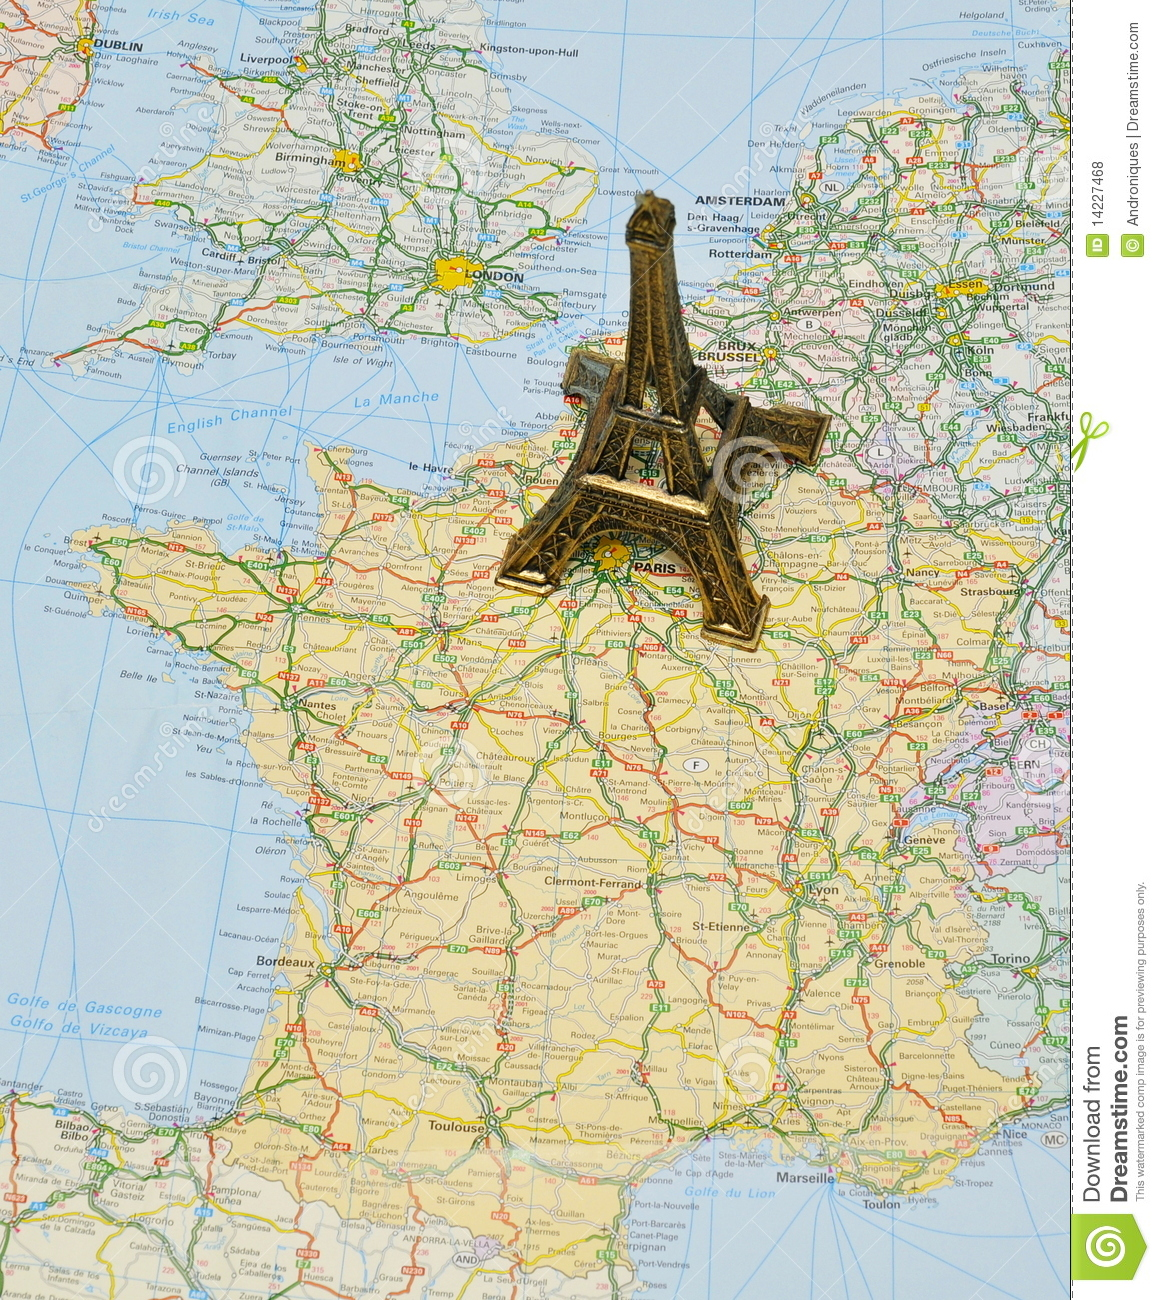 paris on france map with miniature eiffel tower